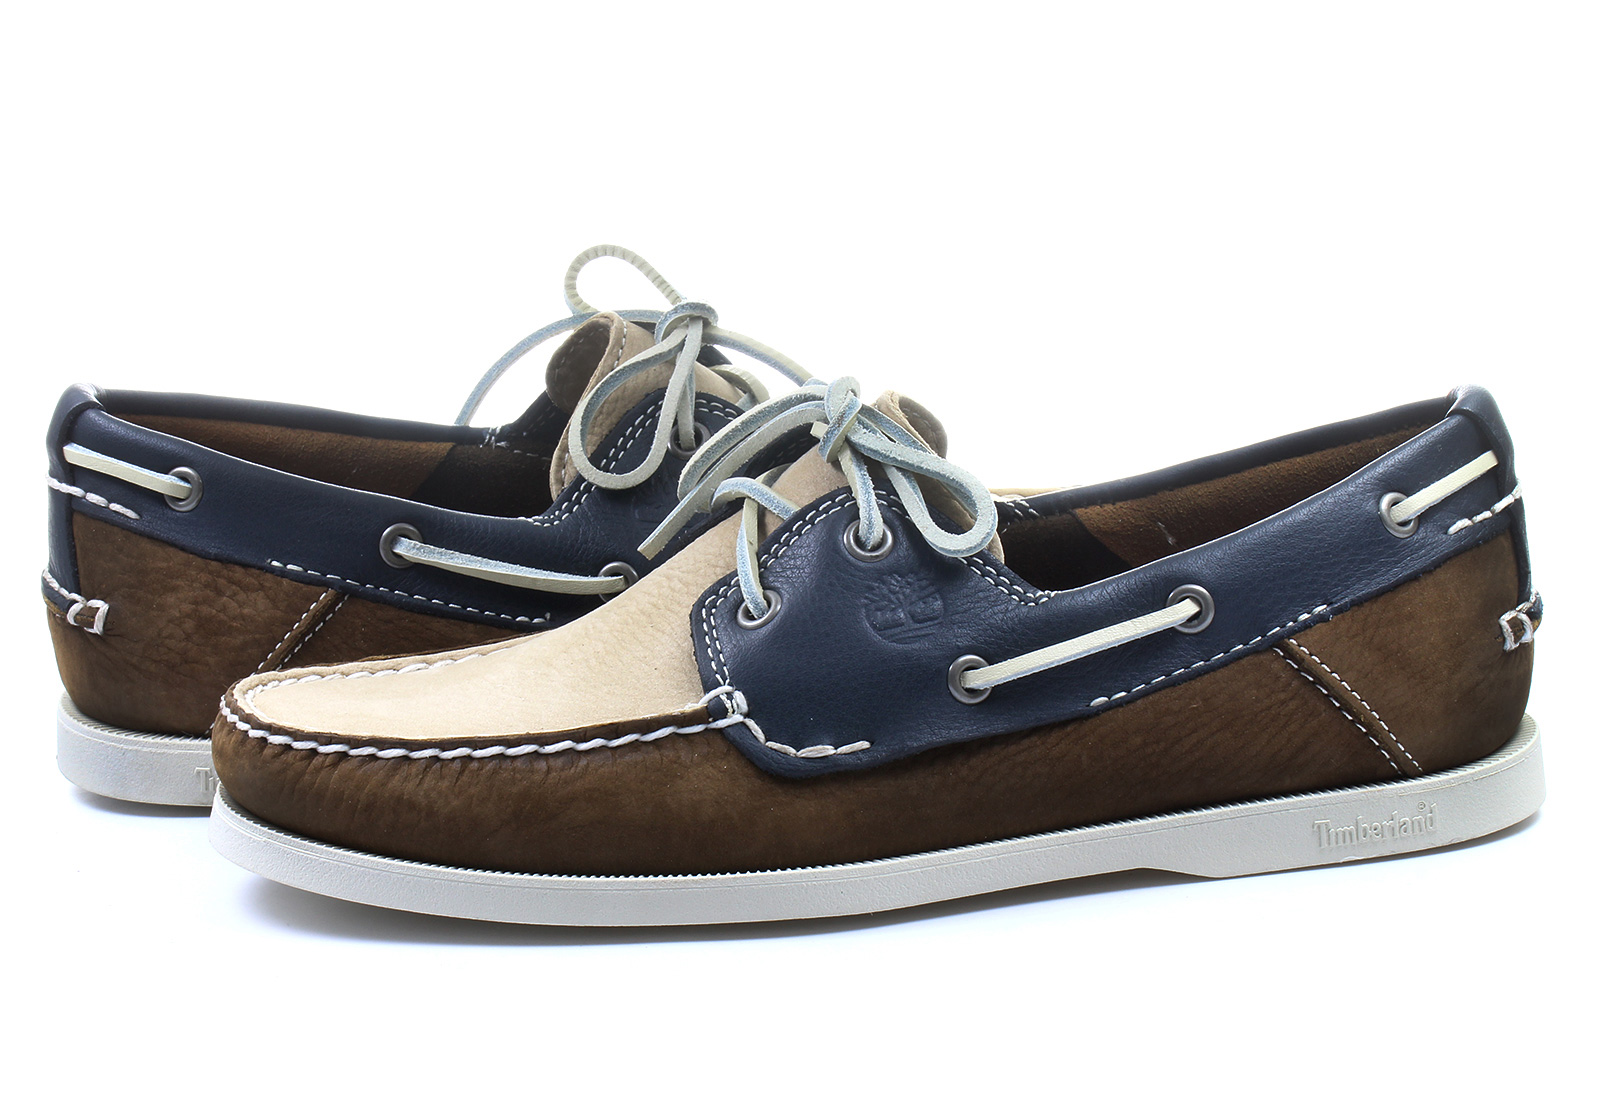 Timberland CLASSIC BOAT szare